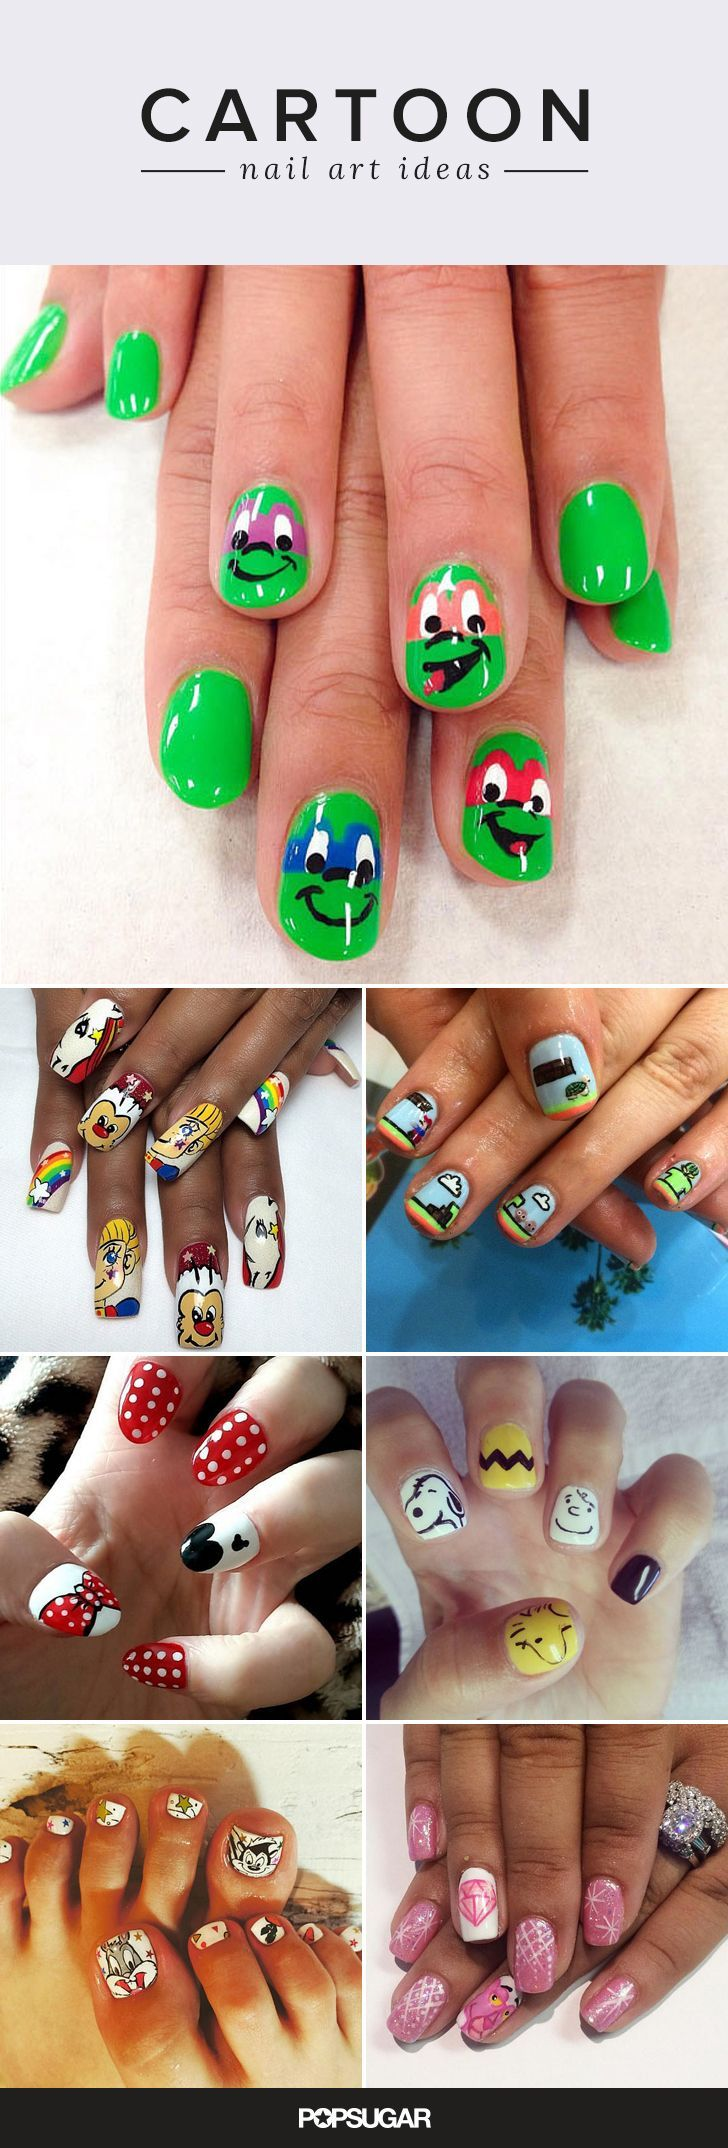 Remember the good ol' days when Saturday mornings were spent chilling in front of the TV with a bowl of Lucky Charms, and not chugging Gatorade and drawing the blinds? Of course you do. So do some of the top nail artists in the world, which is why we're suddenly seeing beloved cartoon characters like Smurfette, Dexter, and SpongeBob popping up on manicures. This trend not only has so many Halloween possibilities, but it's also a fun way to indulge our inner child. Goodness.